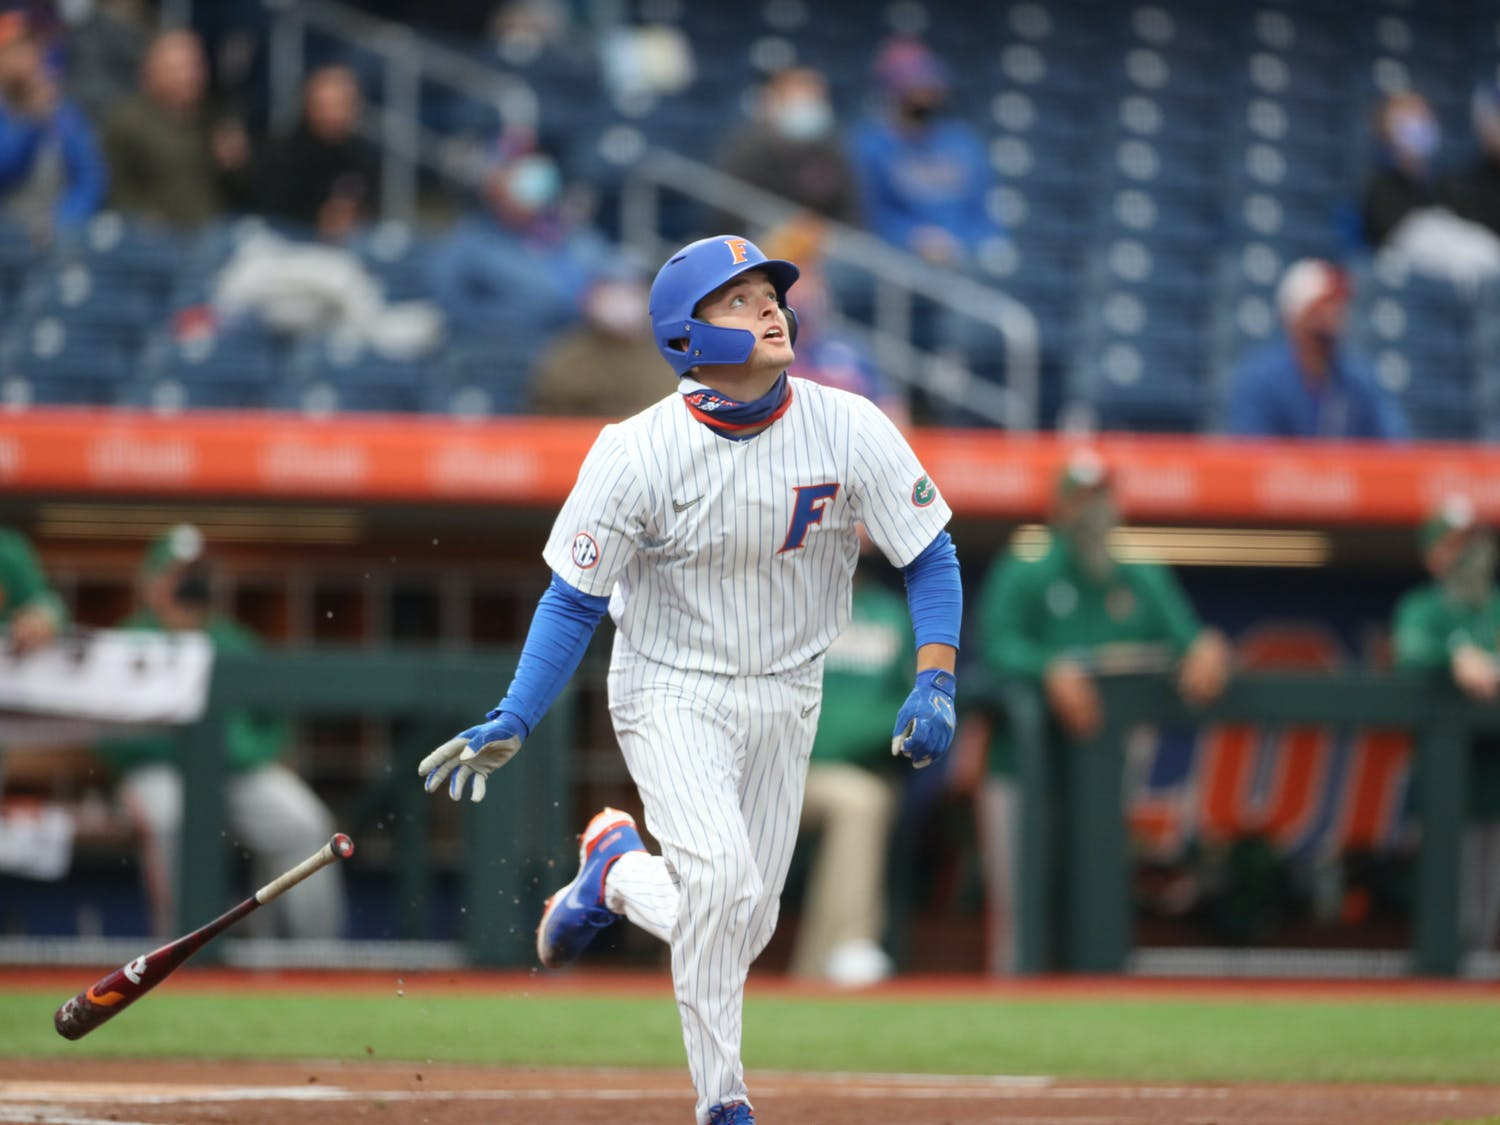 Florida's current opponents don't meet Miami's caliber, but the team has yet to lose since the Miami series. Photo from UF-Miami game Feb. 19. Courtesy of the SEC Media Portal.